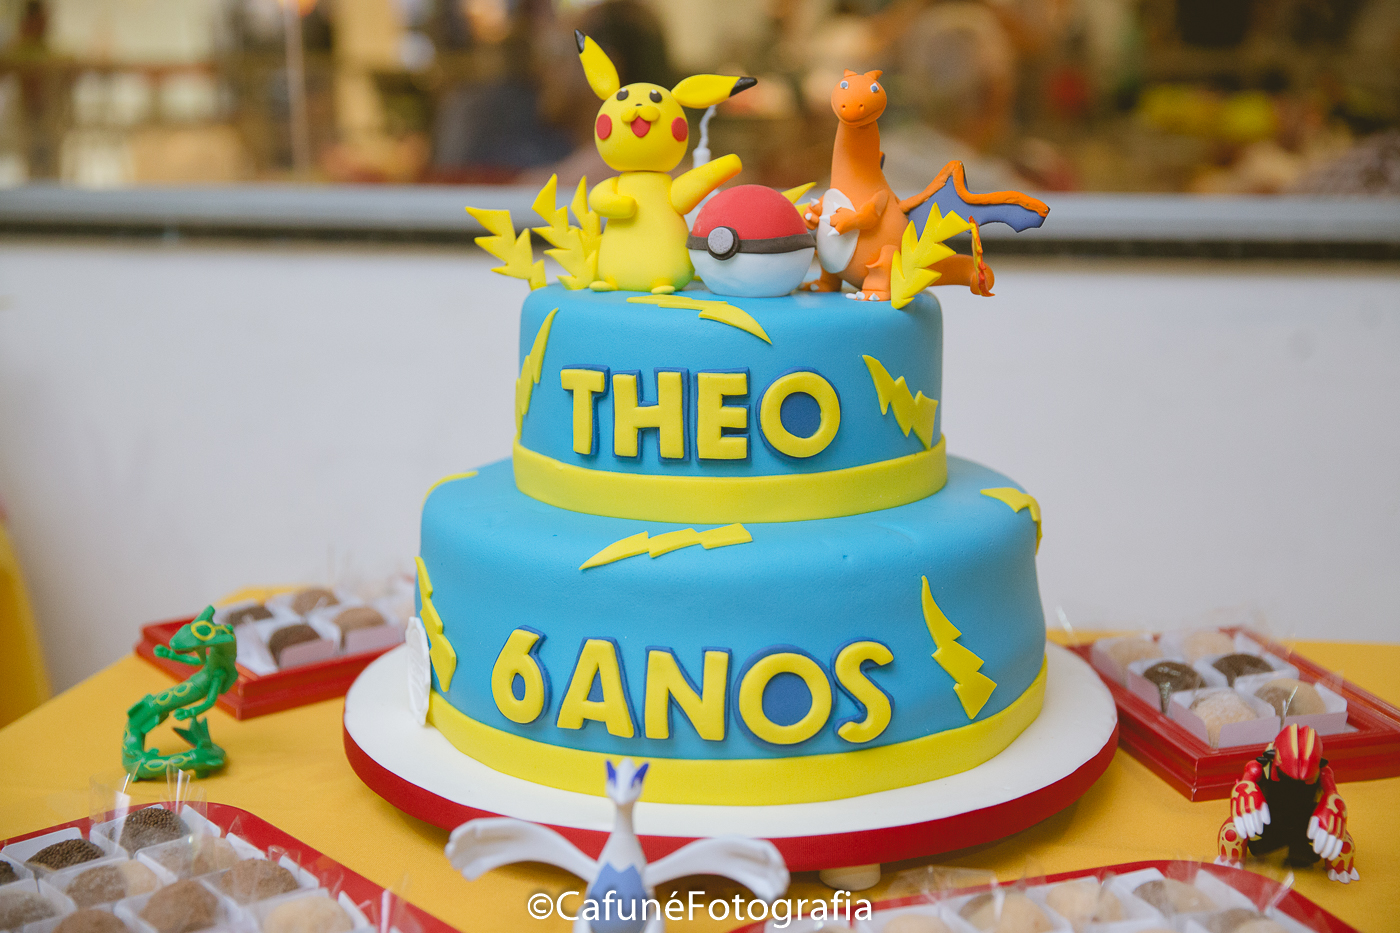 Anivers-rioTheo5anos-4